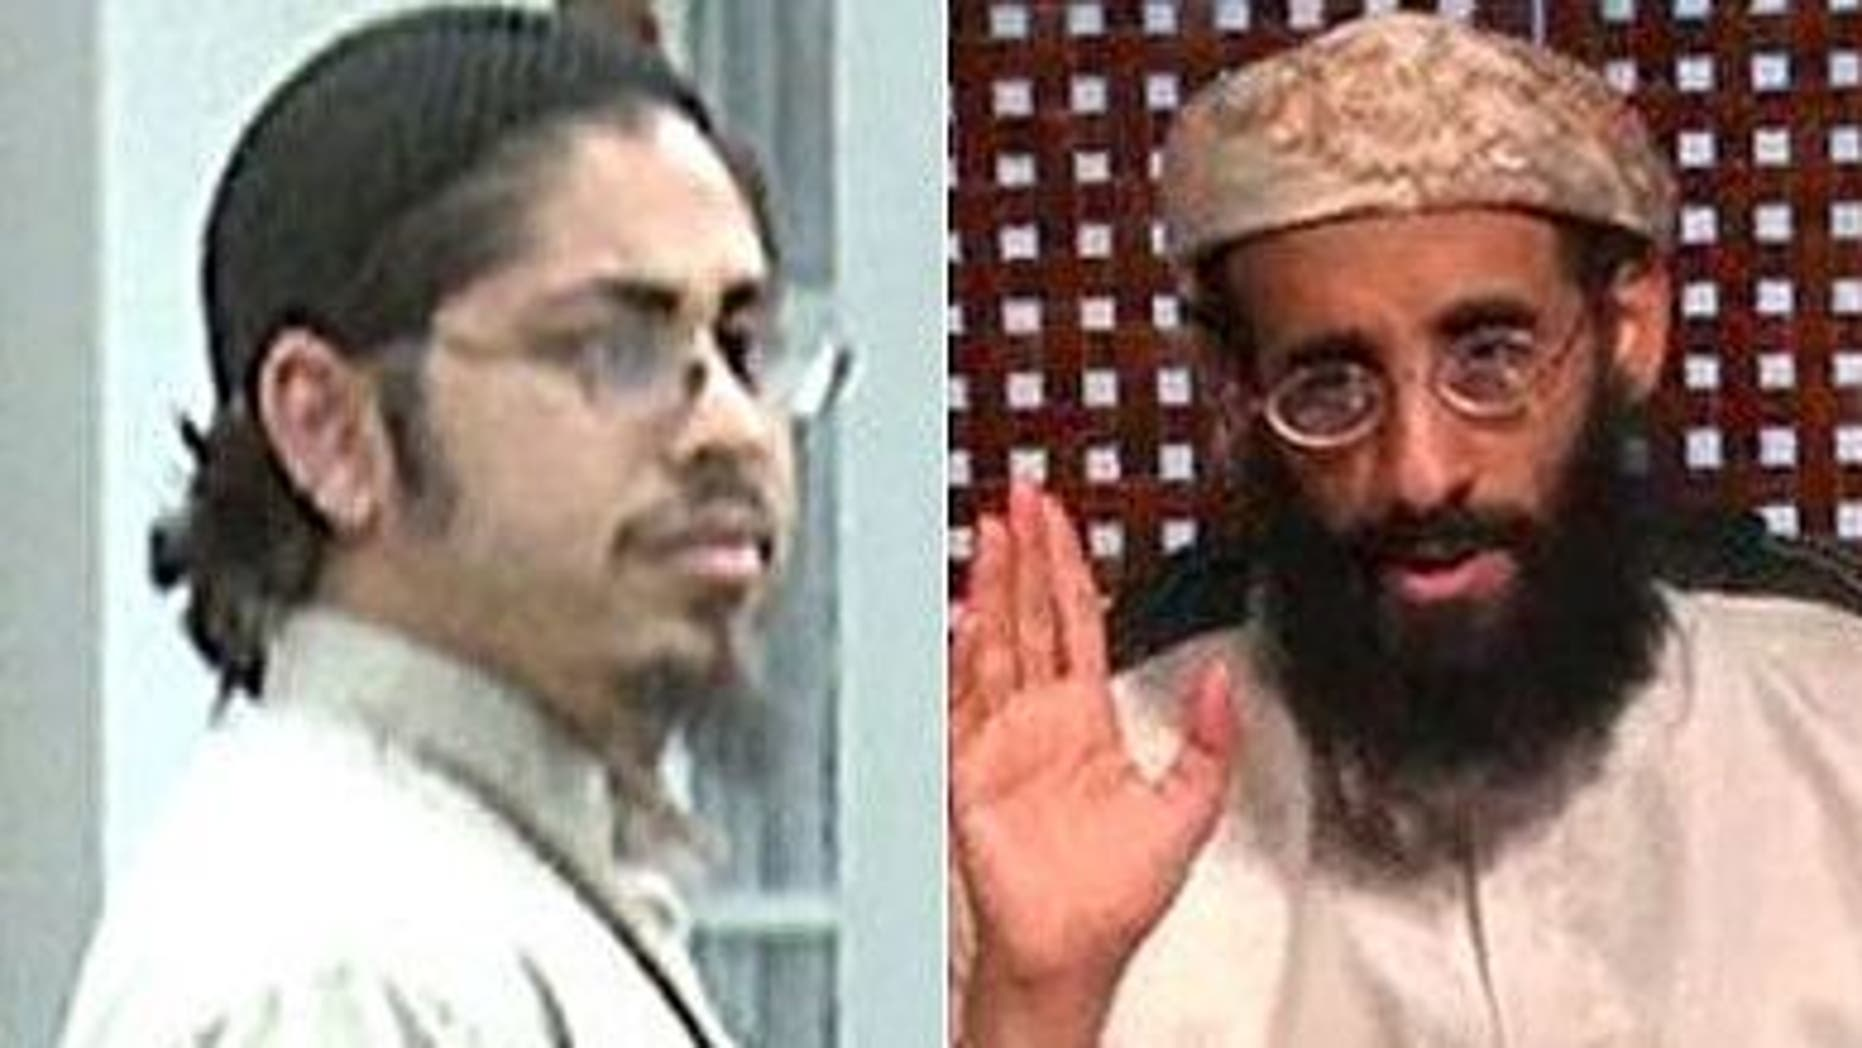 CIA-led drone attack kills terror leader Anwar al-Awlaki and Al Qaeda magazine editor Samir Khan in Yemen, in a strike that used two Predator drones and Hellfire missiles.